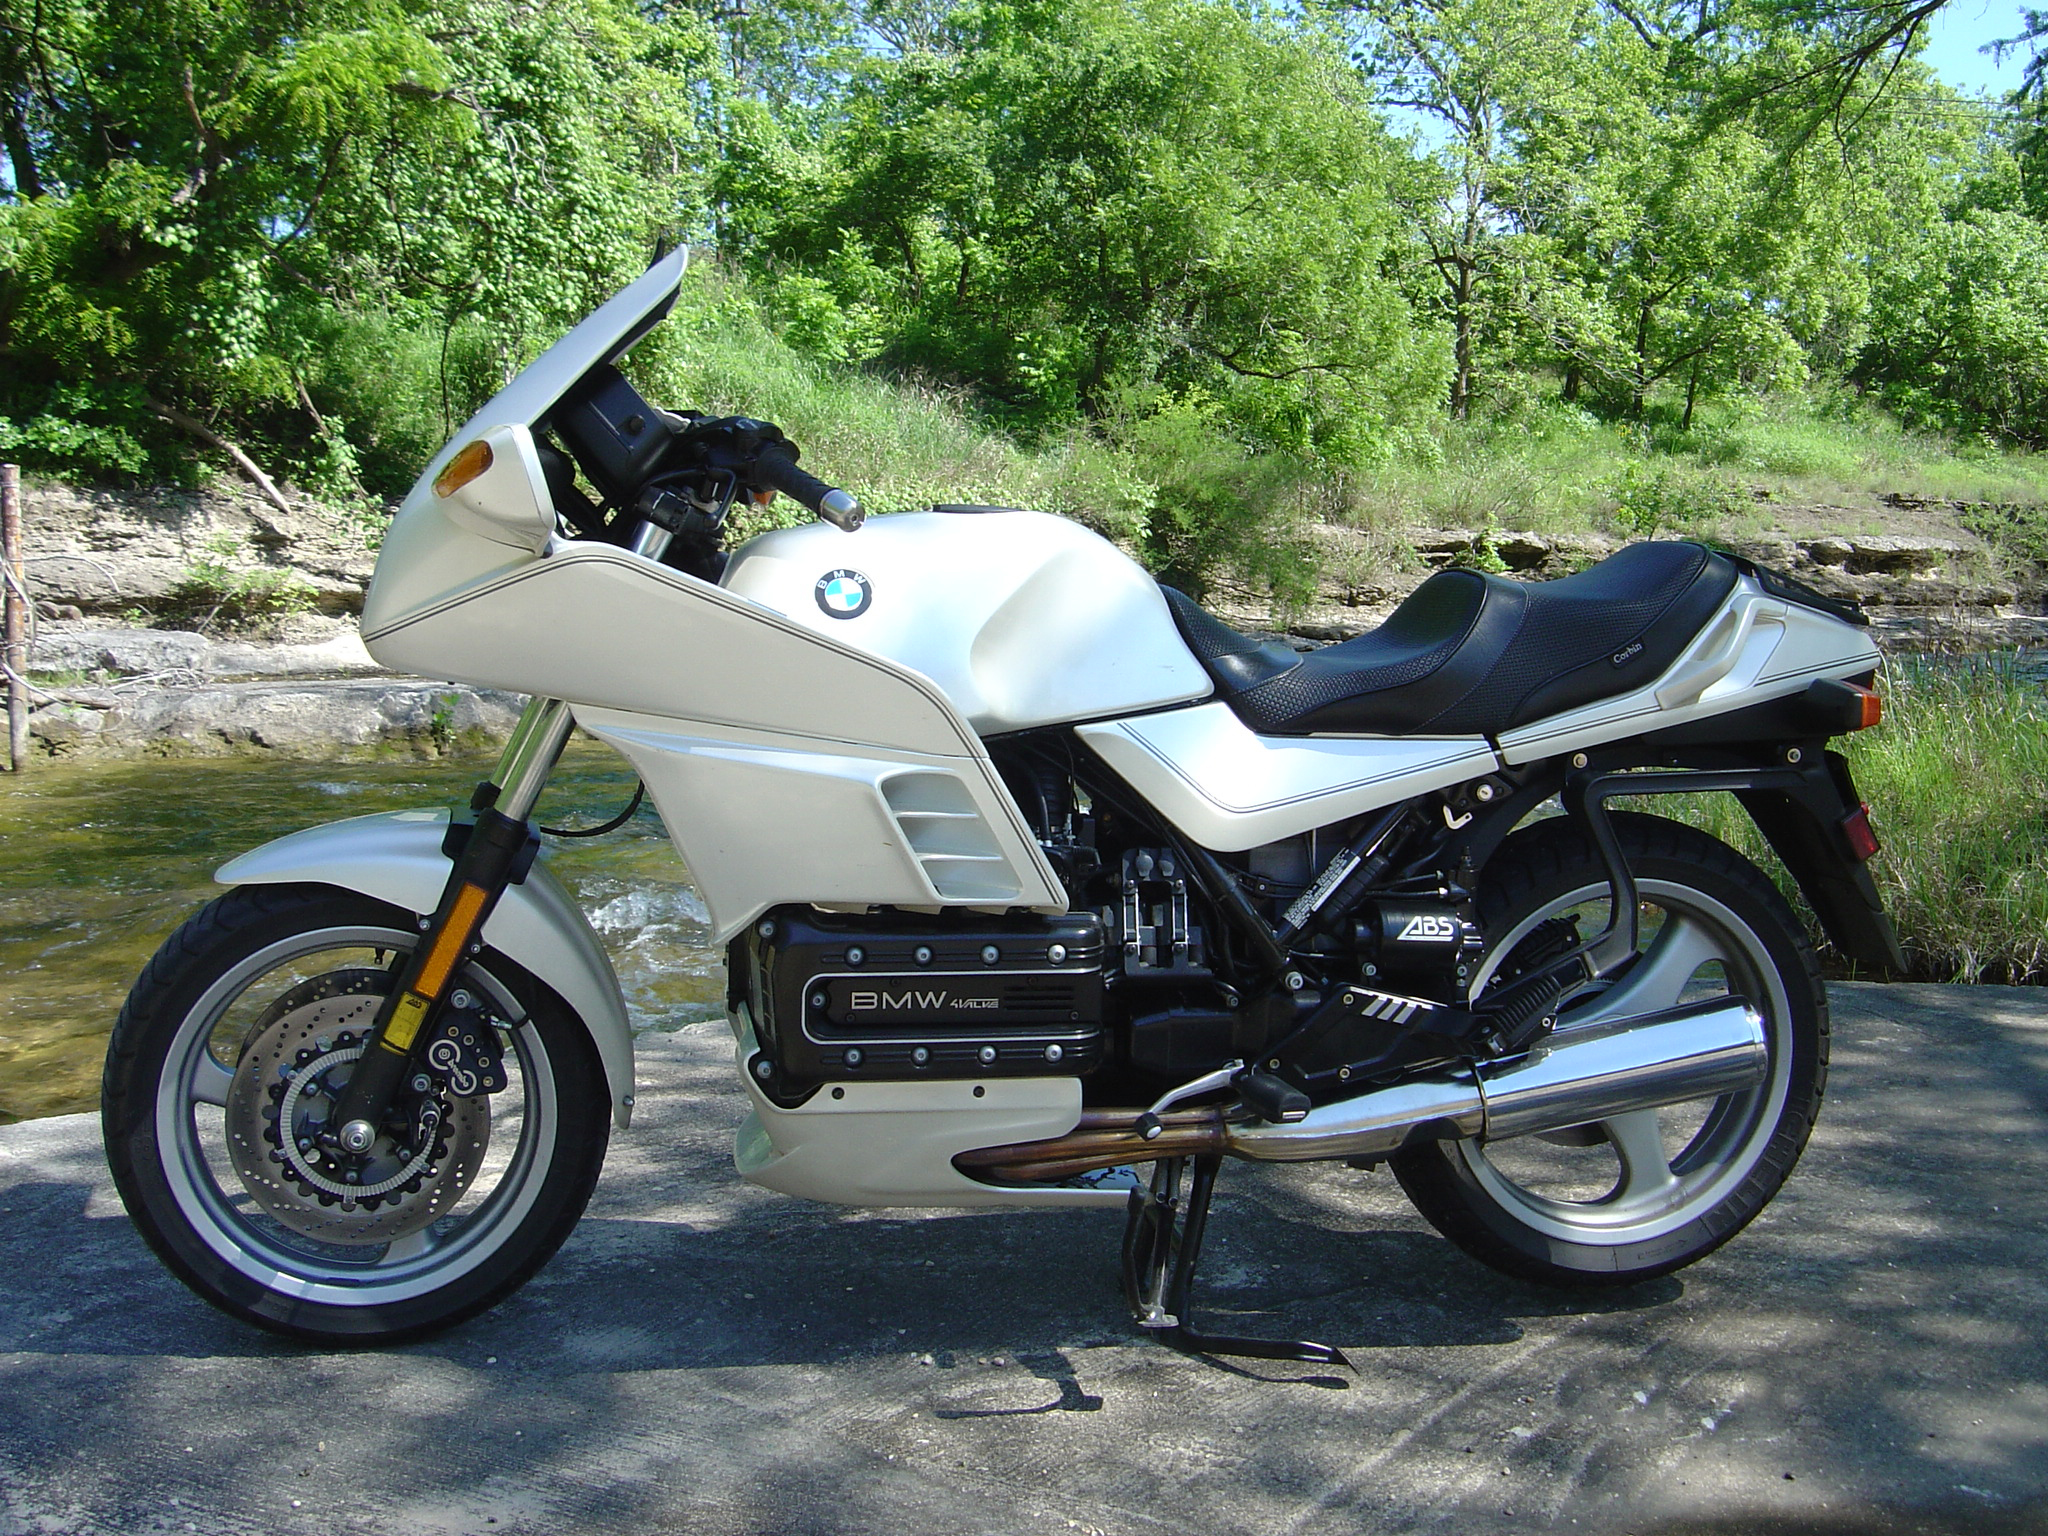 BMW K75RT 1990 images #5121